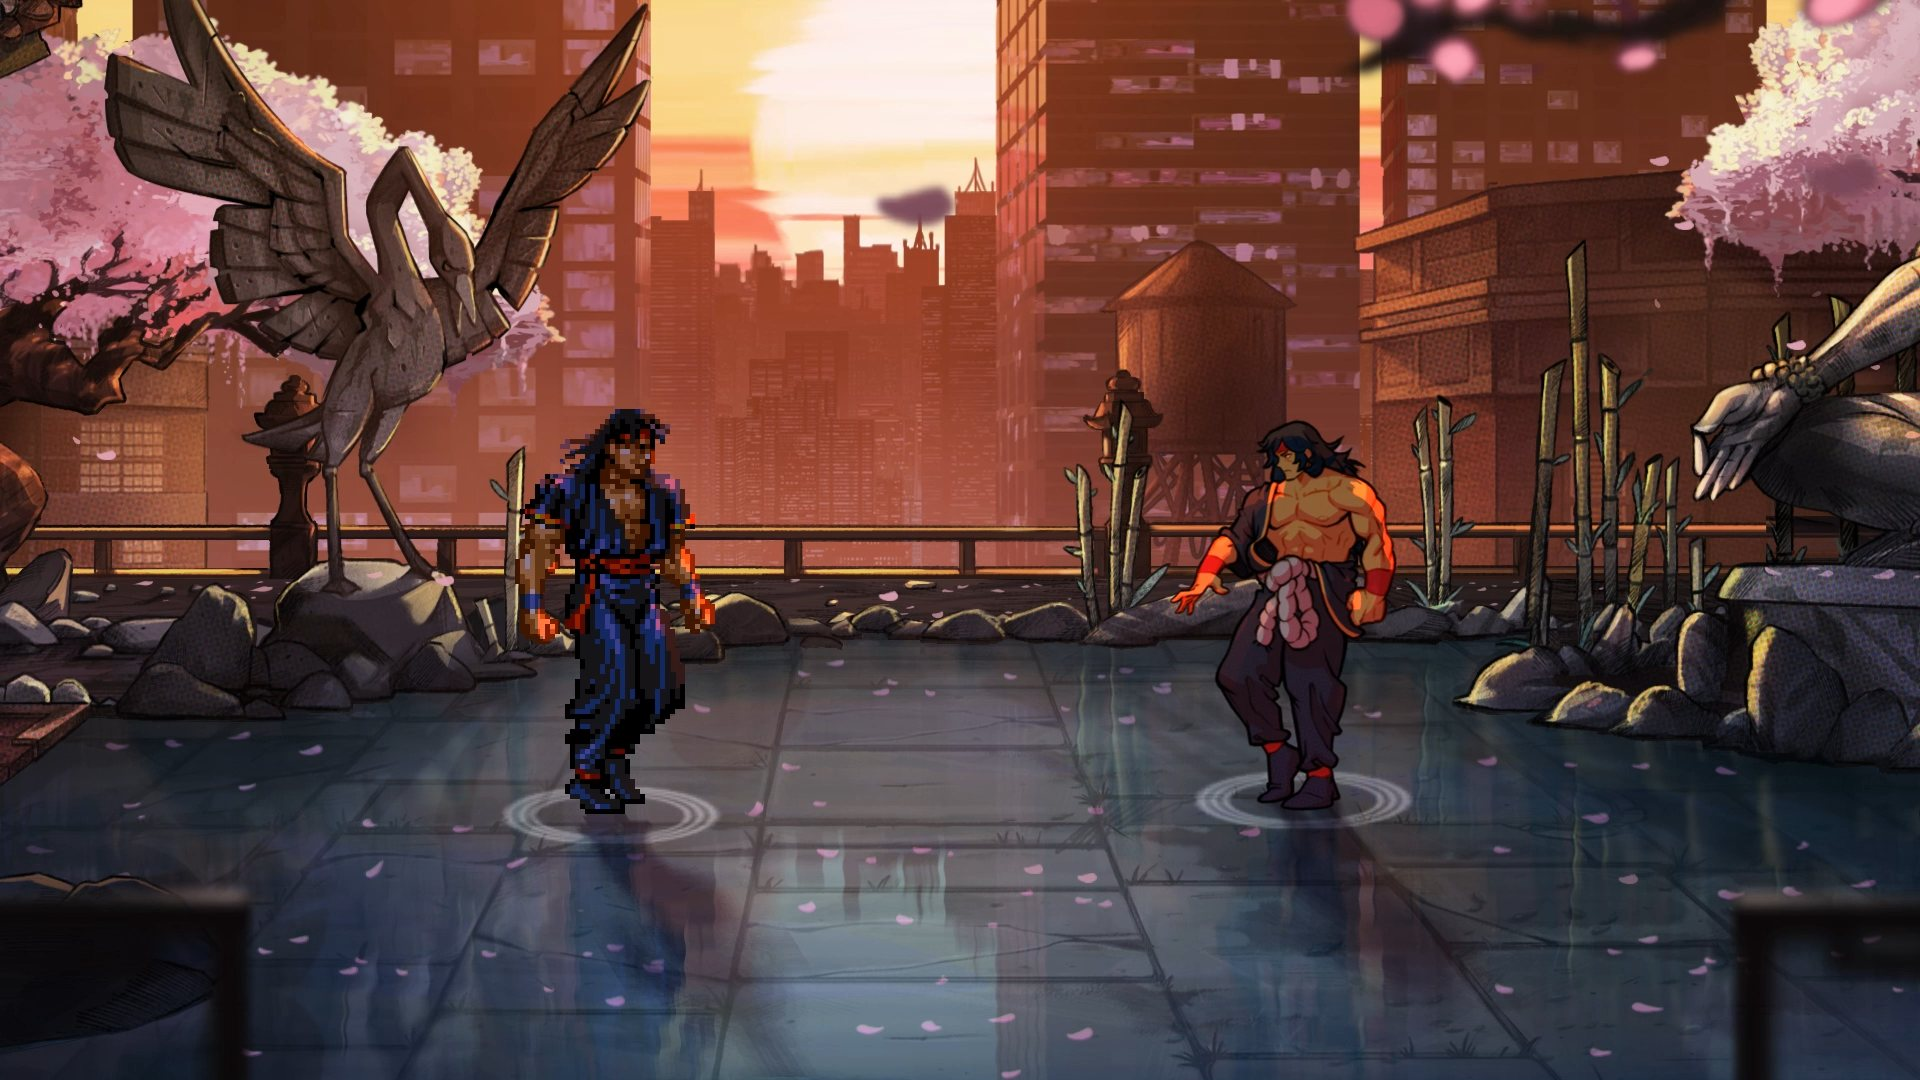 Streets of Rage 4 will be available on April 30th